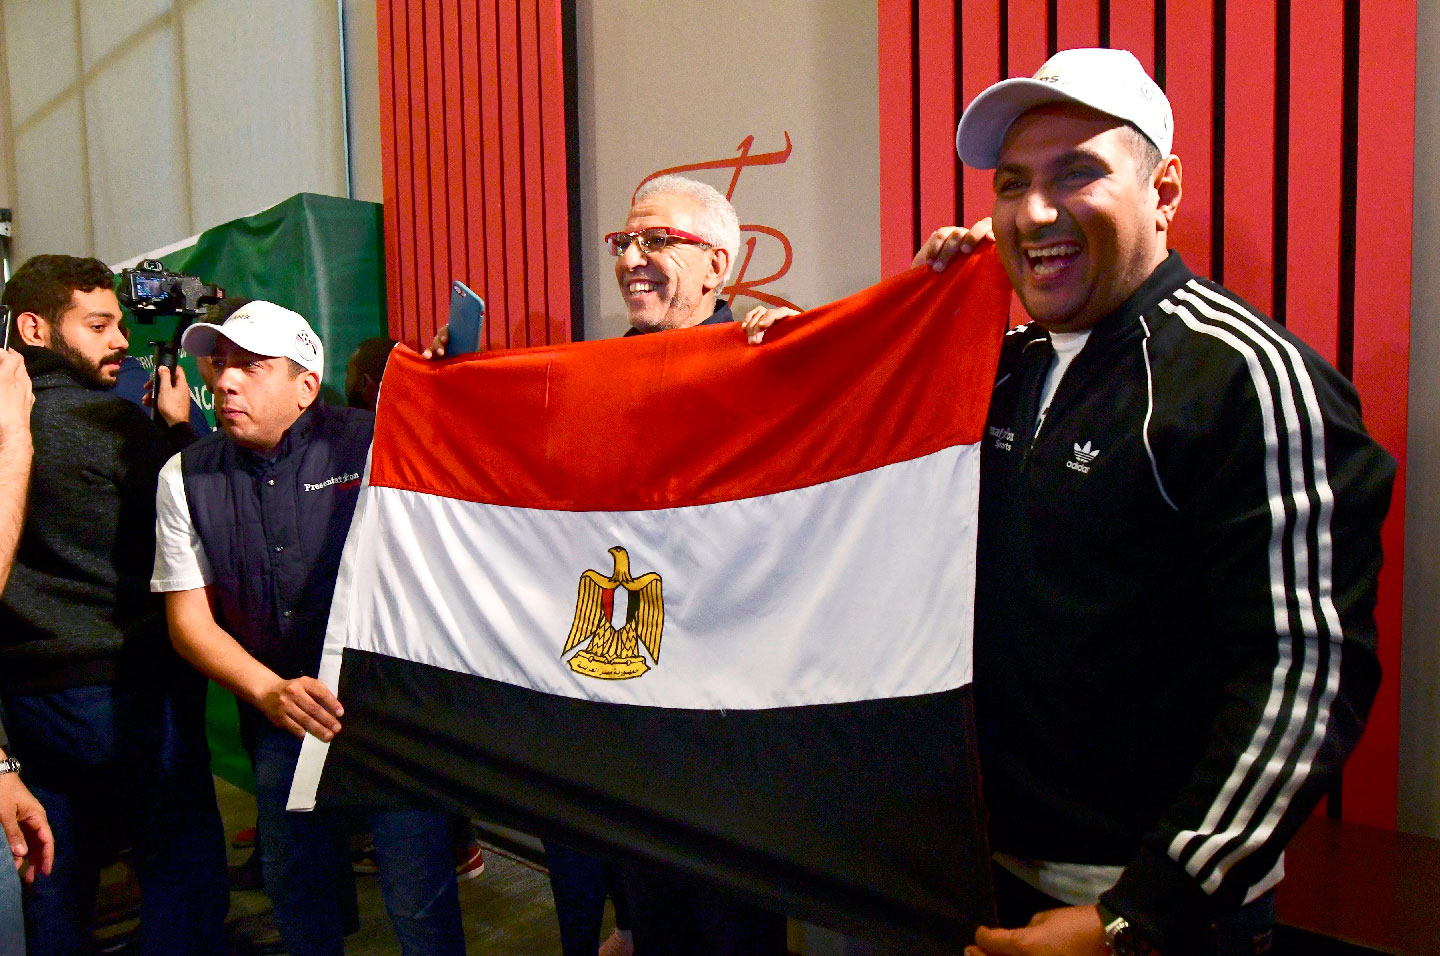 Egyptian representatives pose with their national flag as they celebrate the Confederation of African Football (CAF) executive committee's decision to choose Egypt to host the 2019 Africa Cup of Nations between June 15 and July 13, in an Hotel in Dakar on January 8, 2019.